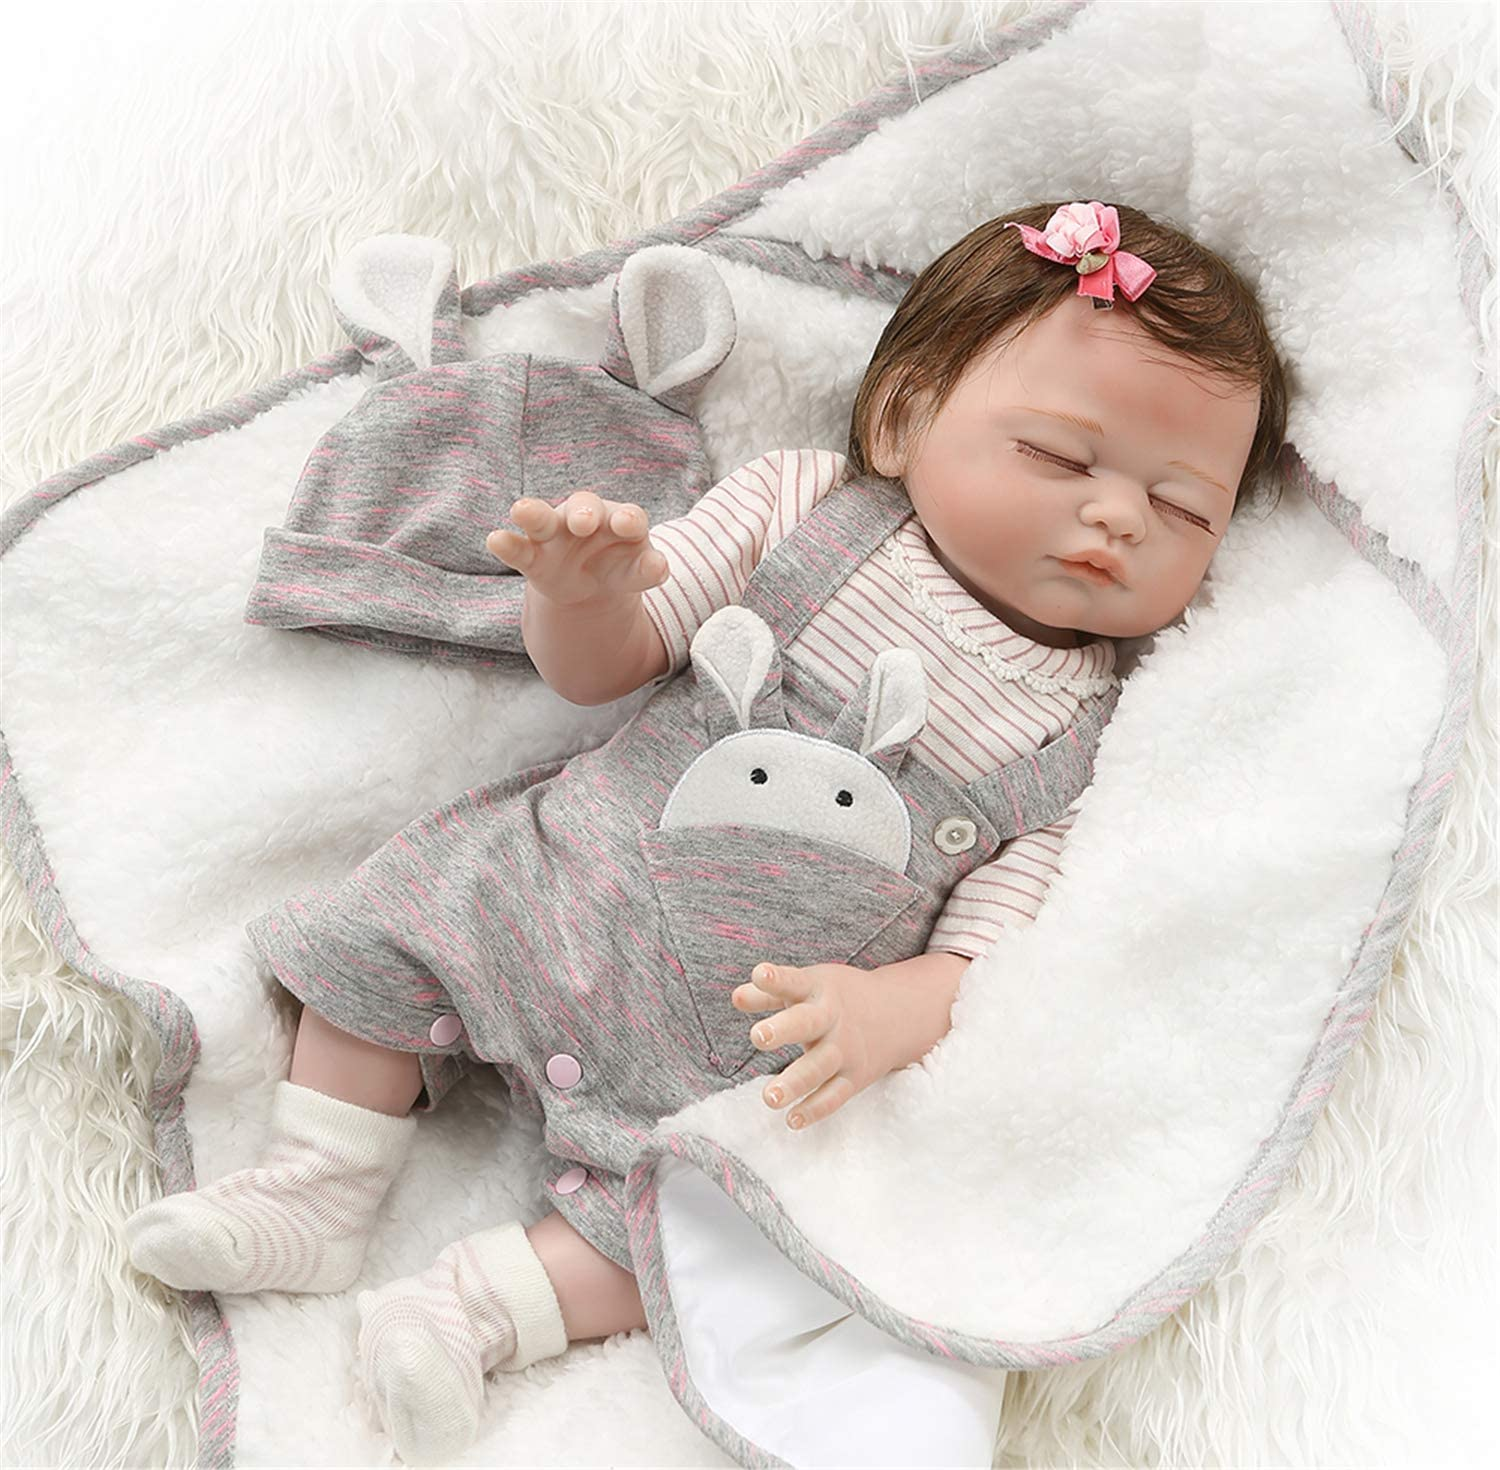 Zero Cash special price Pam Weighted Limited time sale Reborn Baby Rebo Girl Realistic Doll